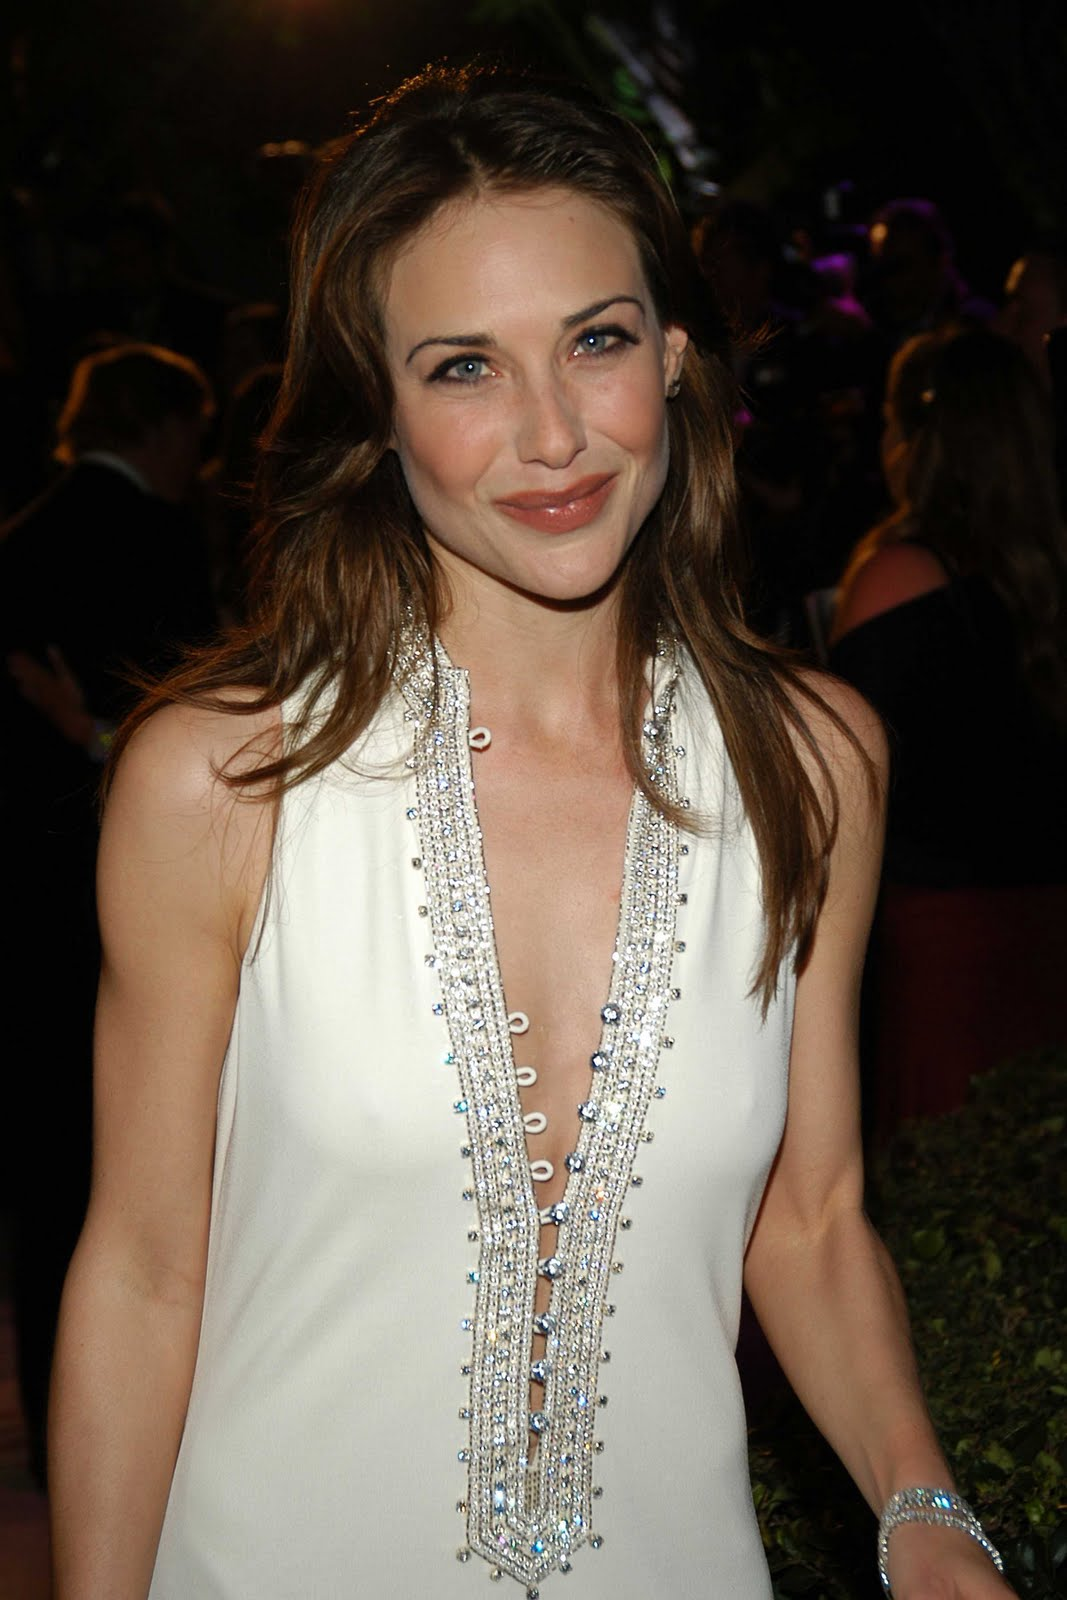 Pity, that Claire forlani porn opinion you